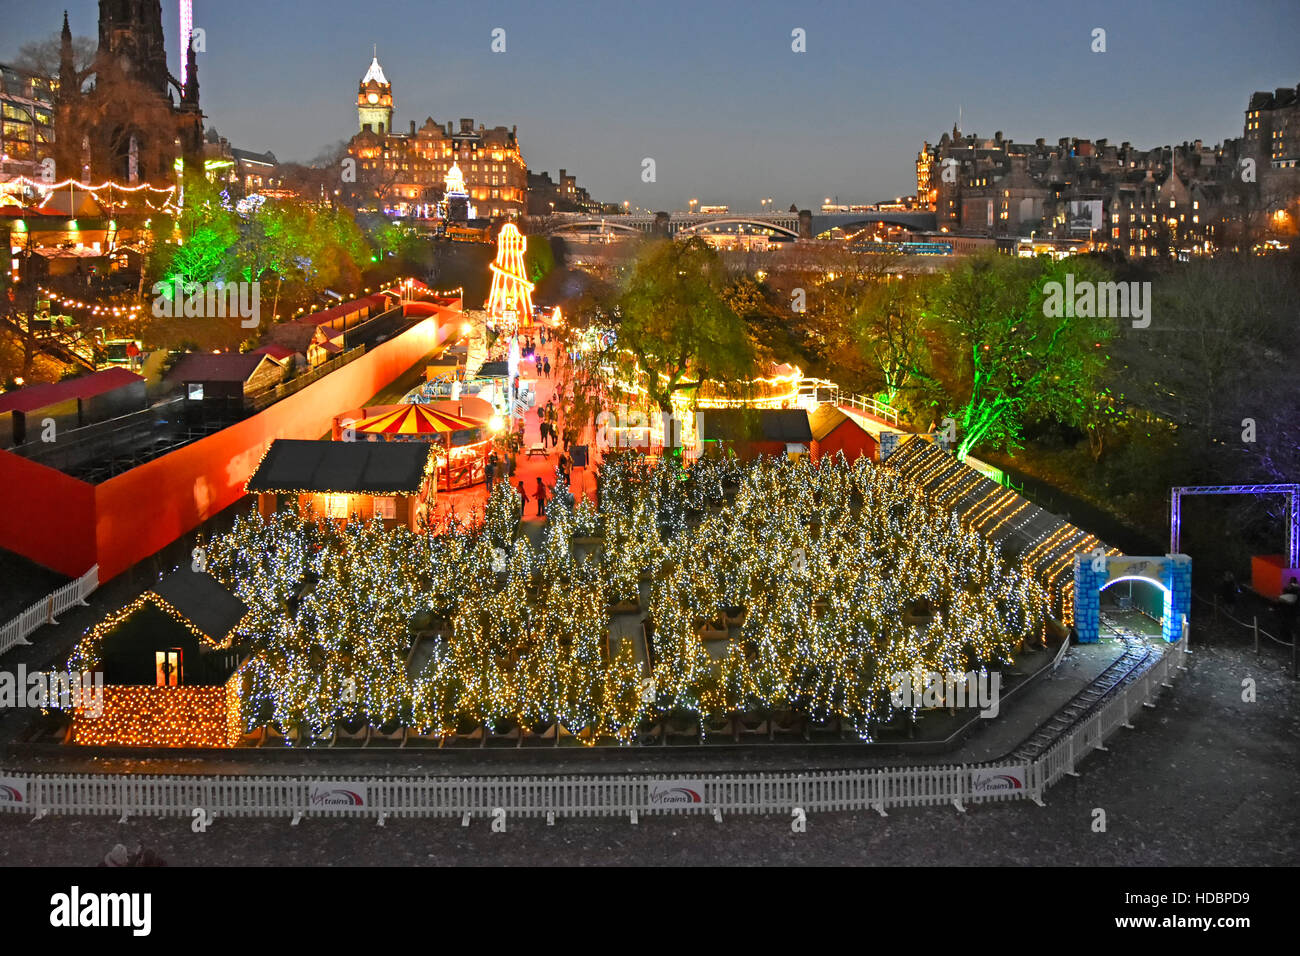 Scottish Edinburgh European Christmas Market and fairground scene in East Princes Street gardens beside the Scott - Stock Image